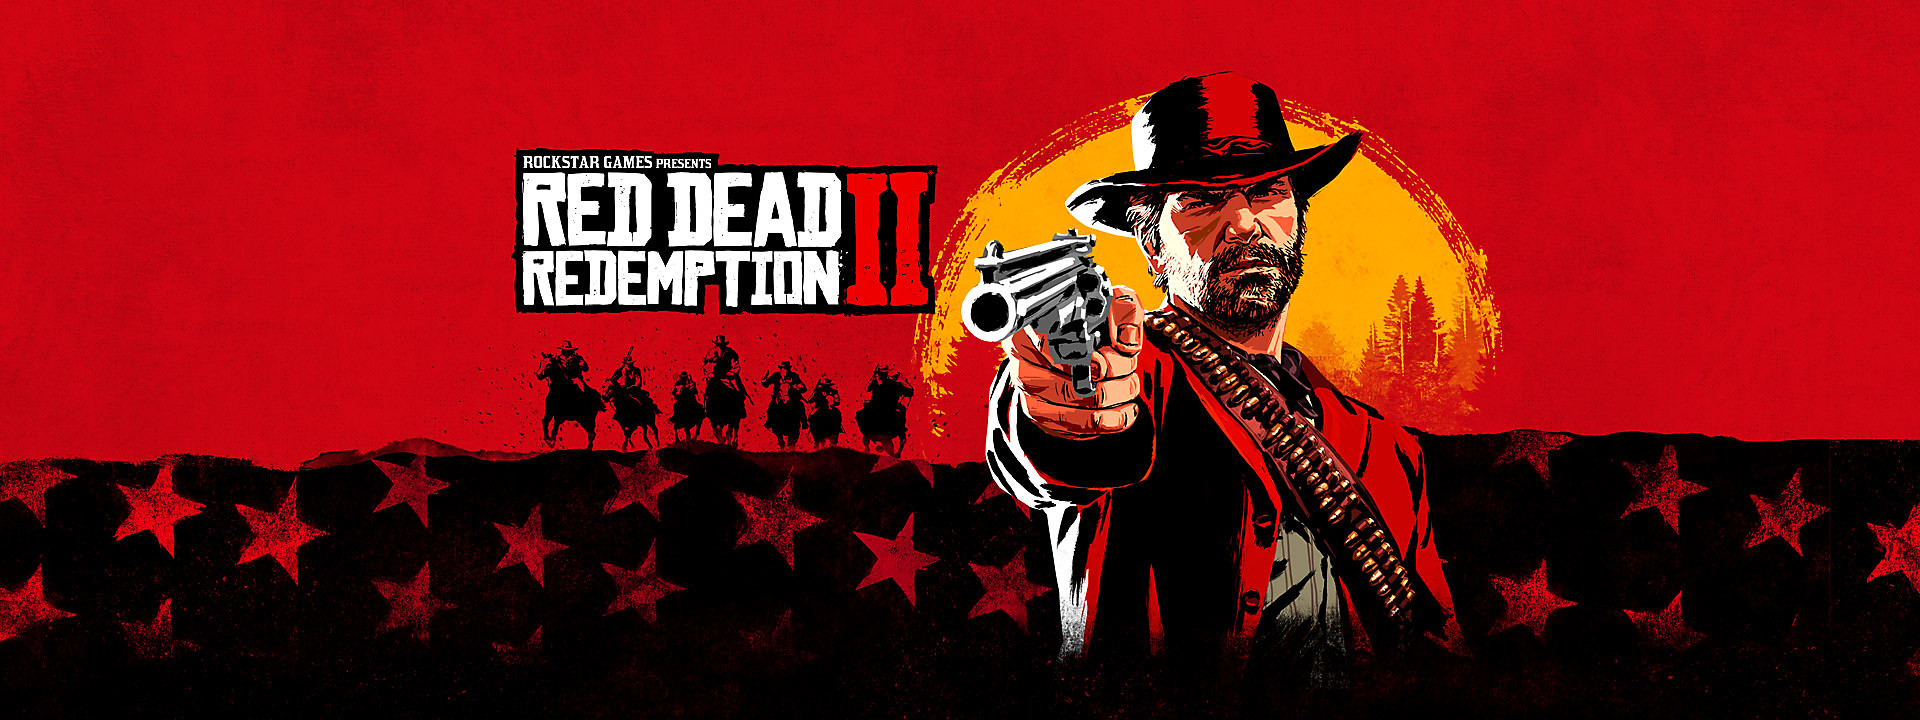 Photo of Red Dead Redemption 2 dorazilo na PC